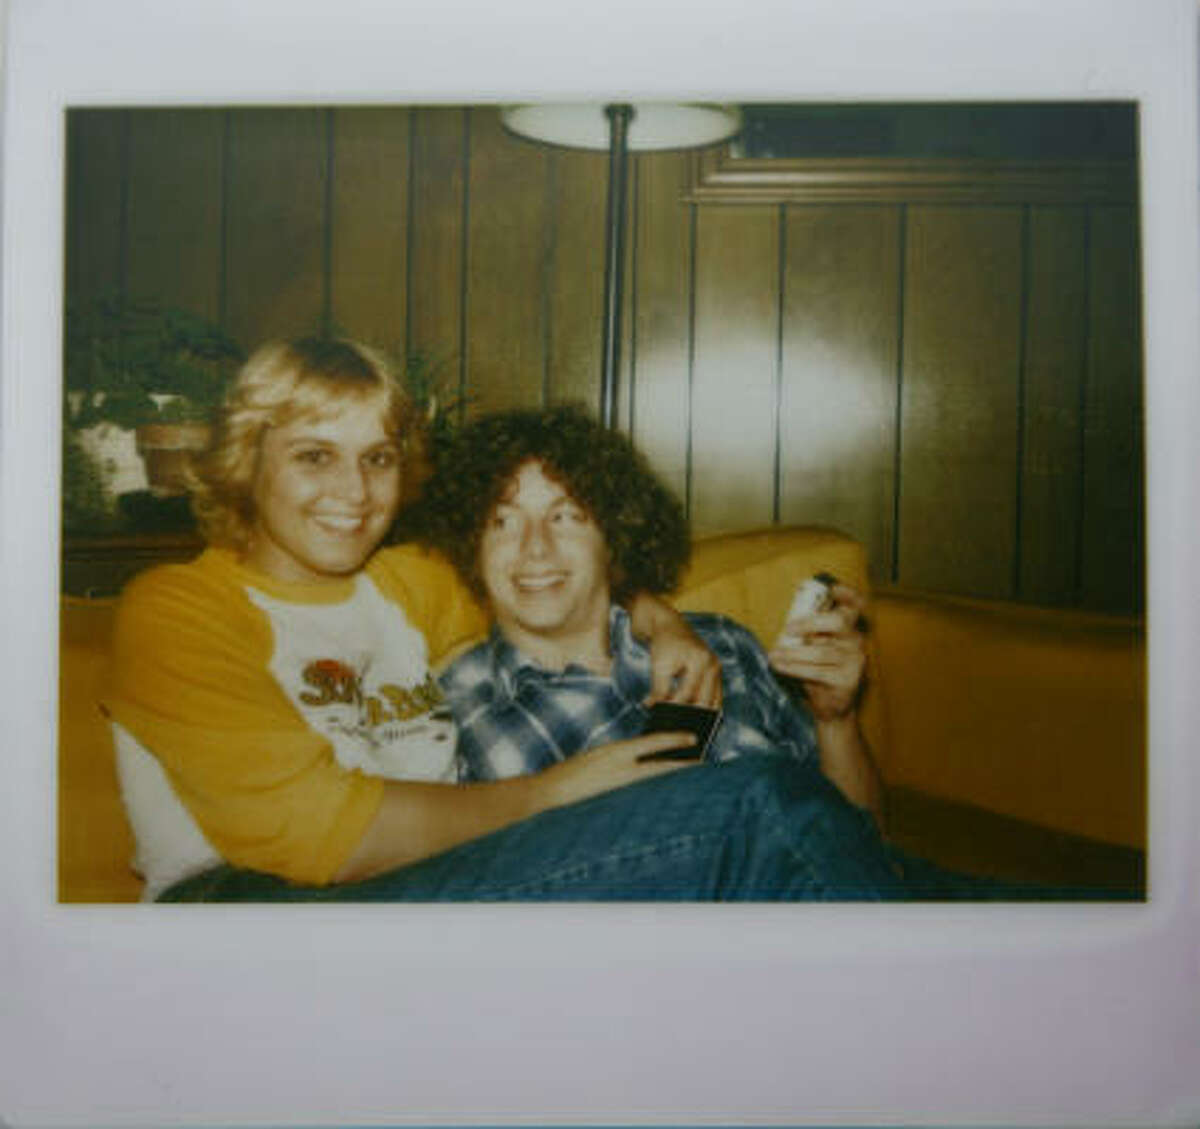 A photo of Nancy Wilemski and Steve Kearney in their younger years when they were dating.